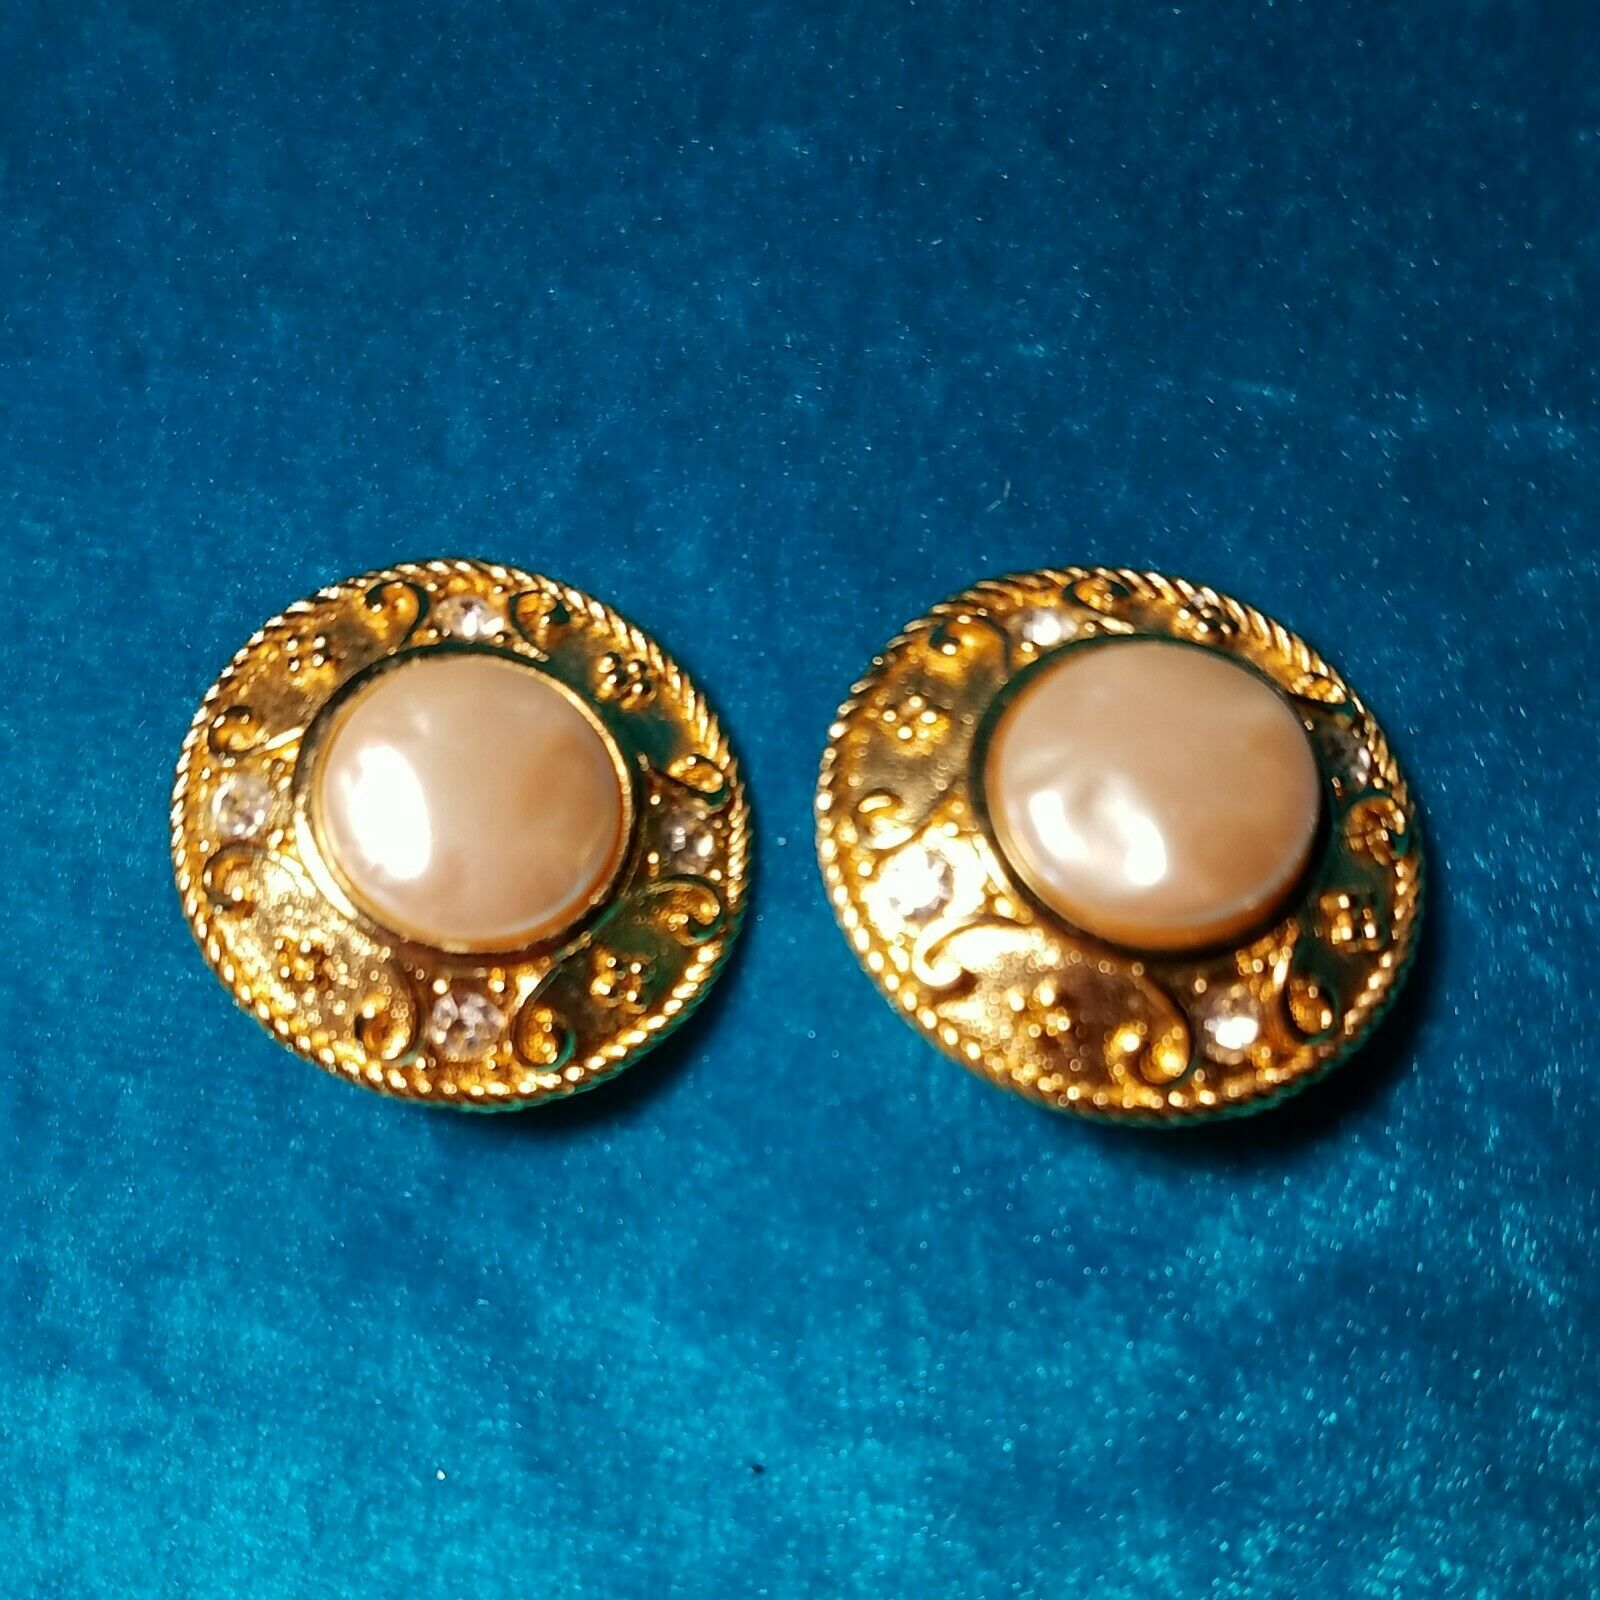 Premier,USA Encircled Pearl Gold Statement Earrings Pearl Earrings Vintage Earrings Vintage Jewelry Clip On Earrings